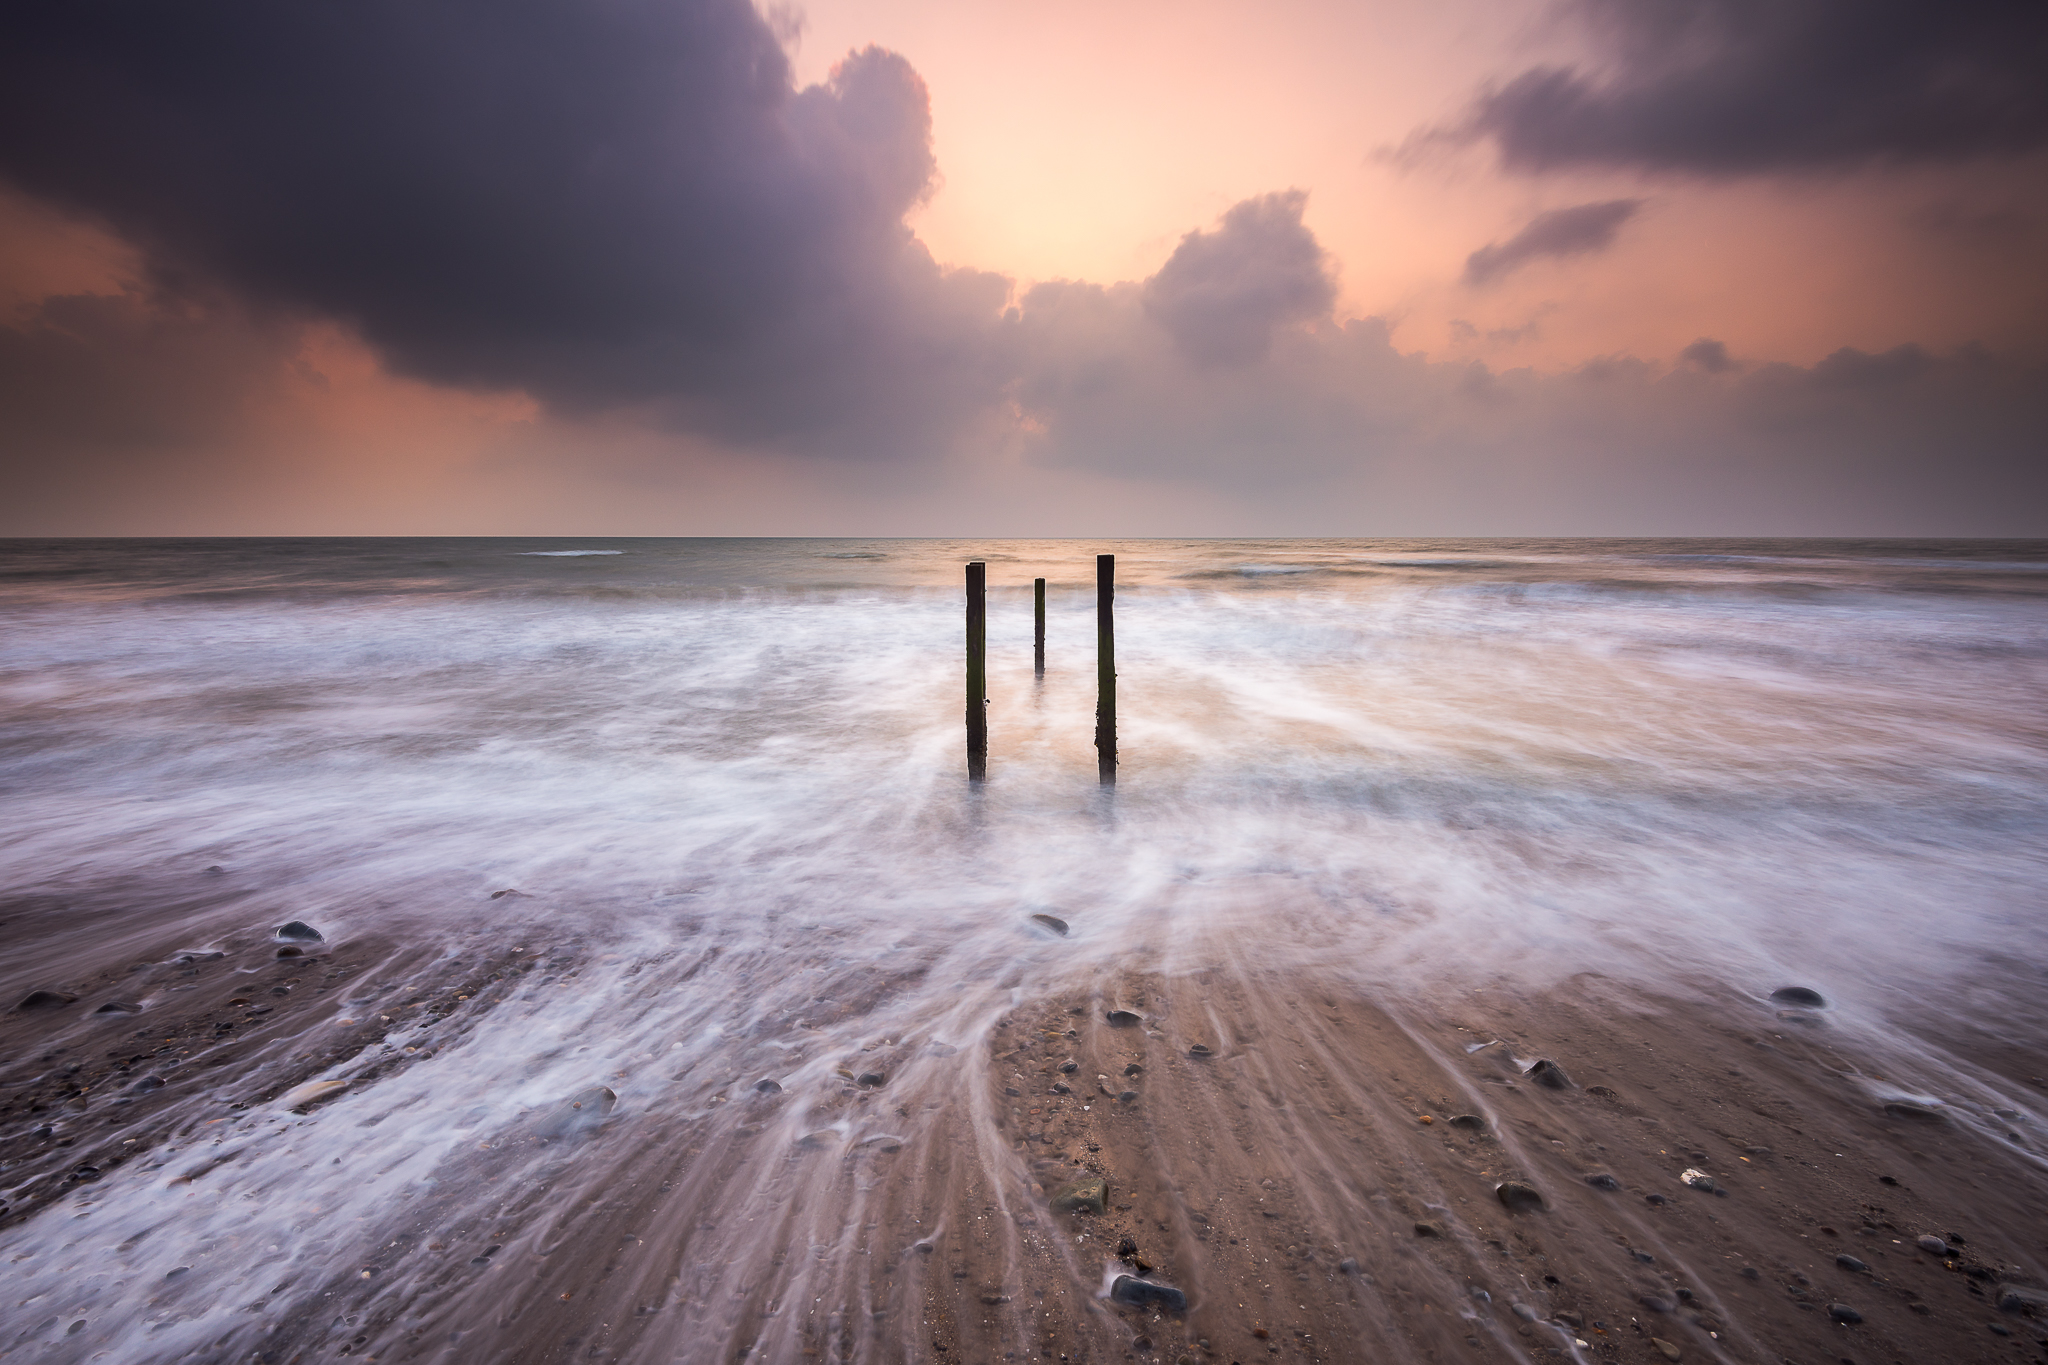 Landscape photography post processing tutorial